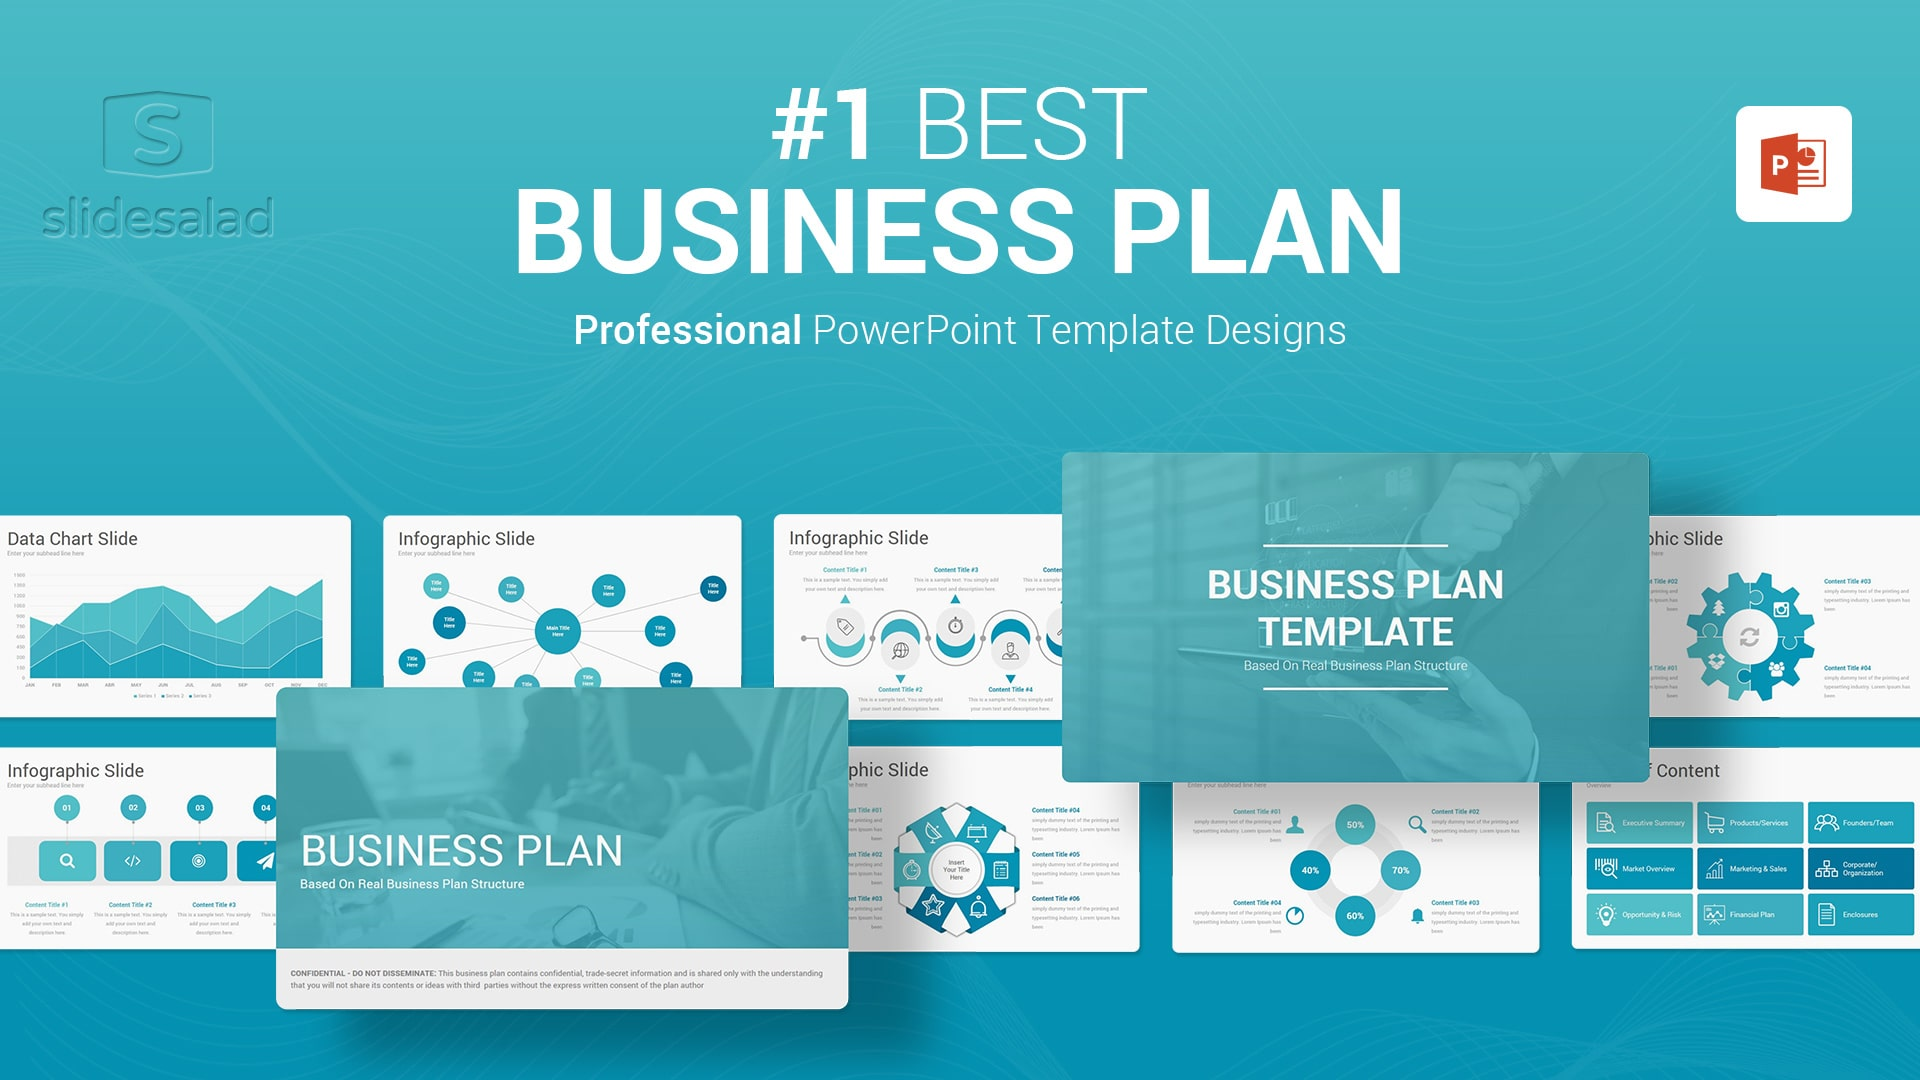 Best Business Plan PowerPoint Presentation Template - Interesting Fully Customizable Business PowerPoint Theme Layouts